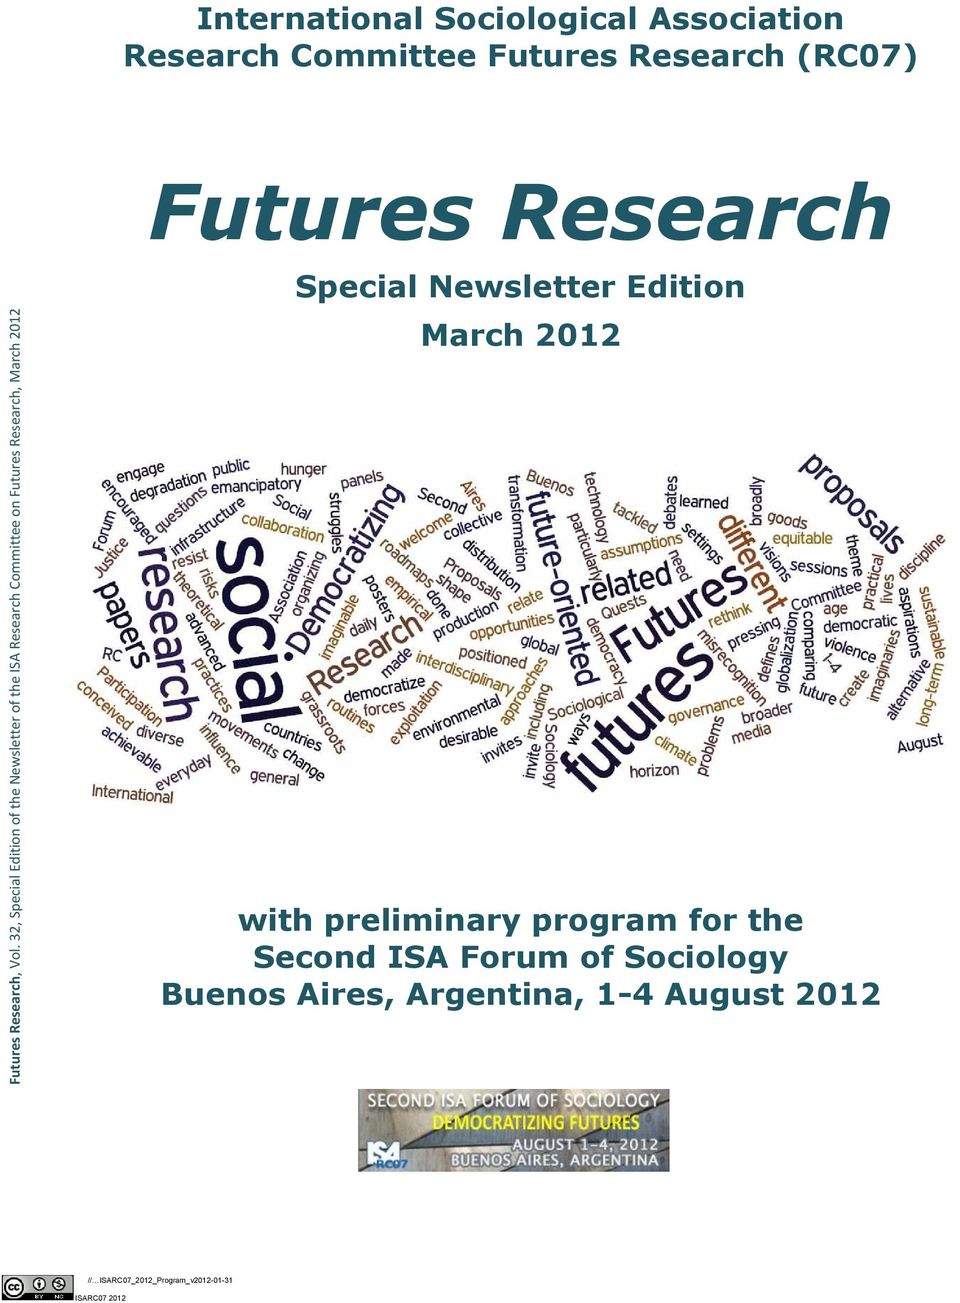 2012 Futures Research Special Newsletter Edition March 2012 with preliminary program for the Second